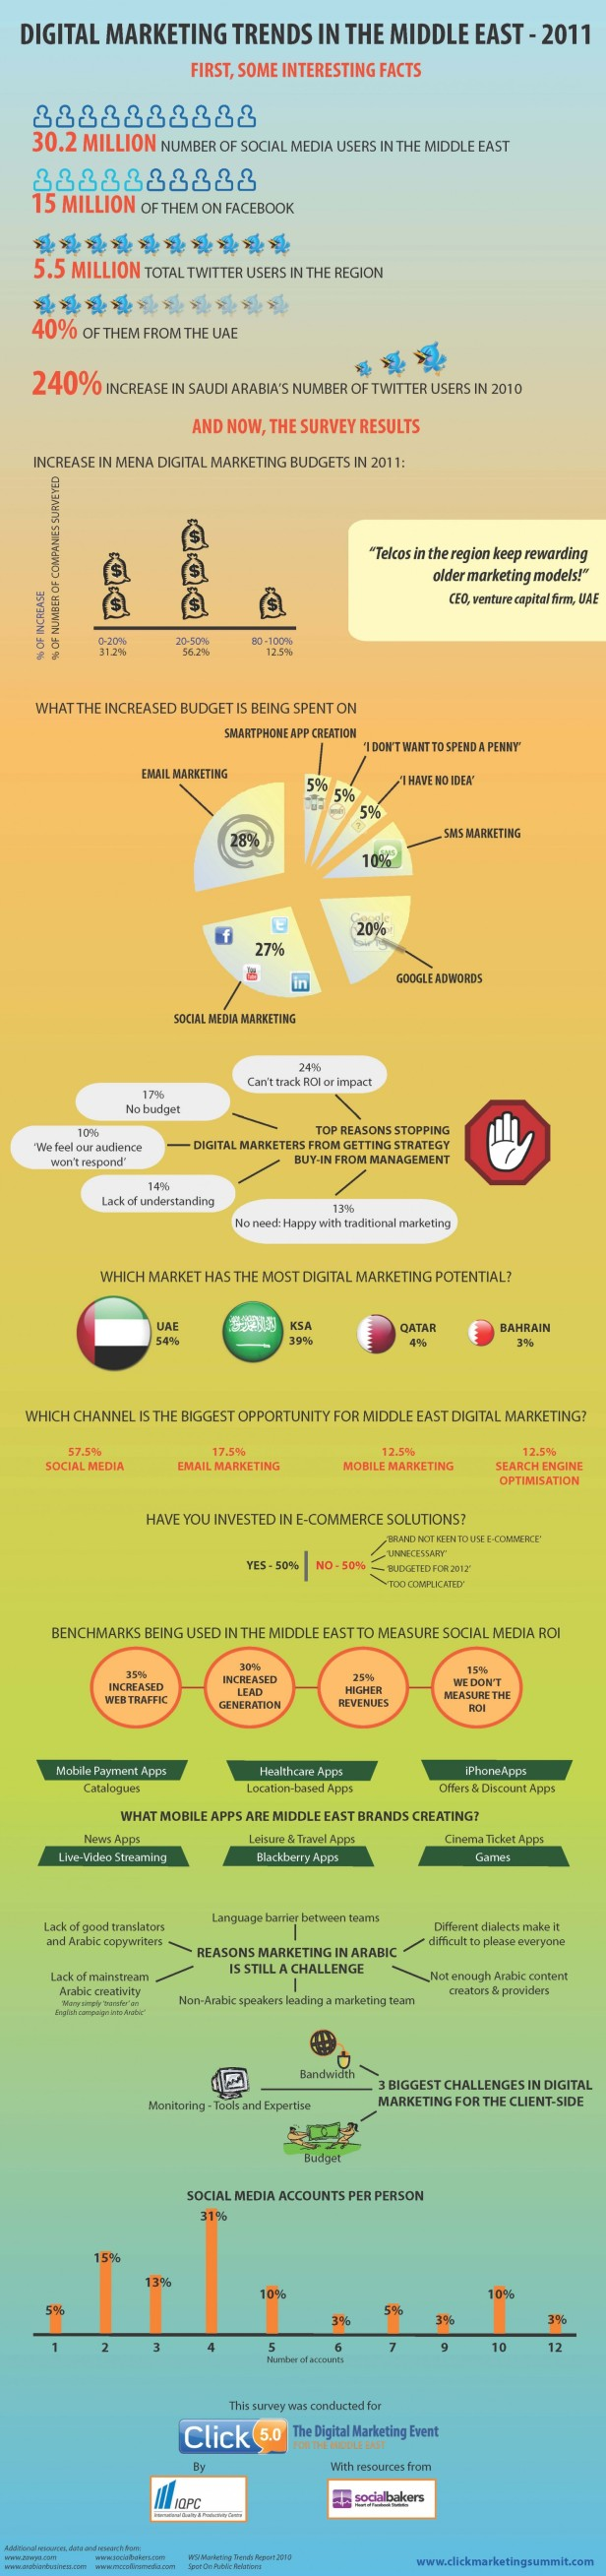 digital-marketing-trends-in-the-middle-east_50290c82b7404_w1500